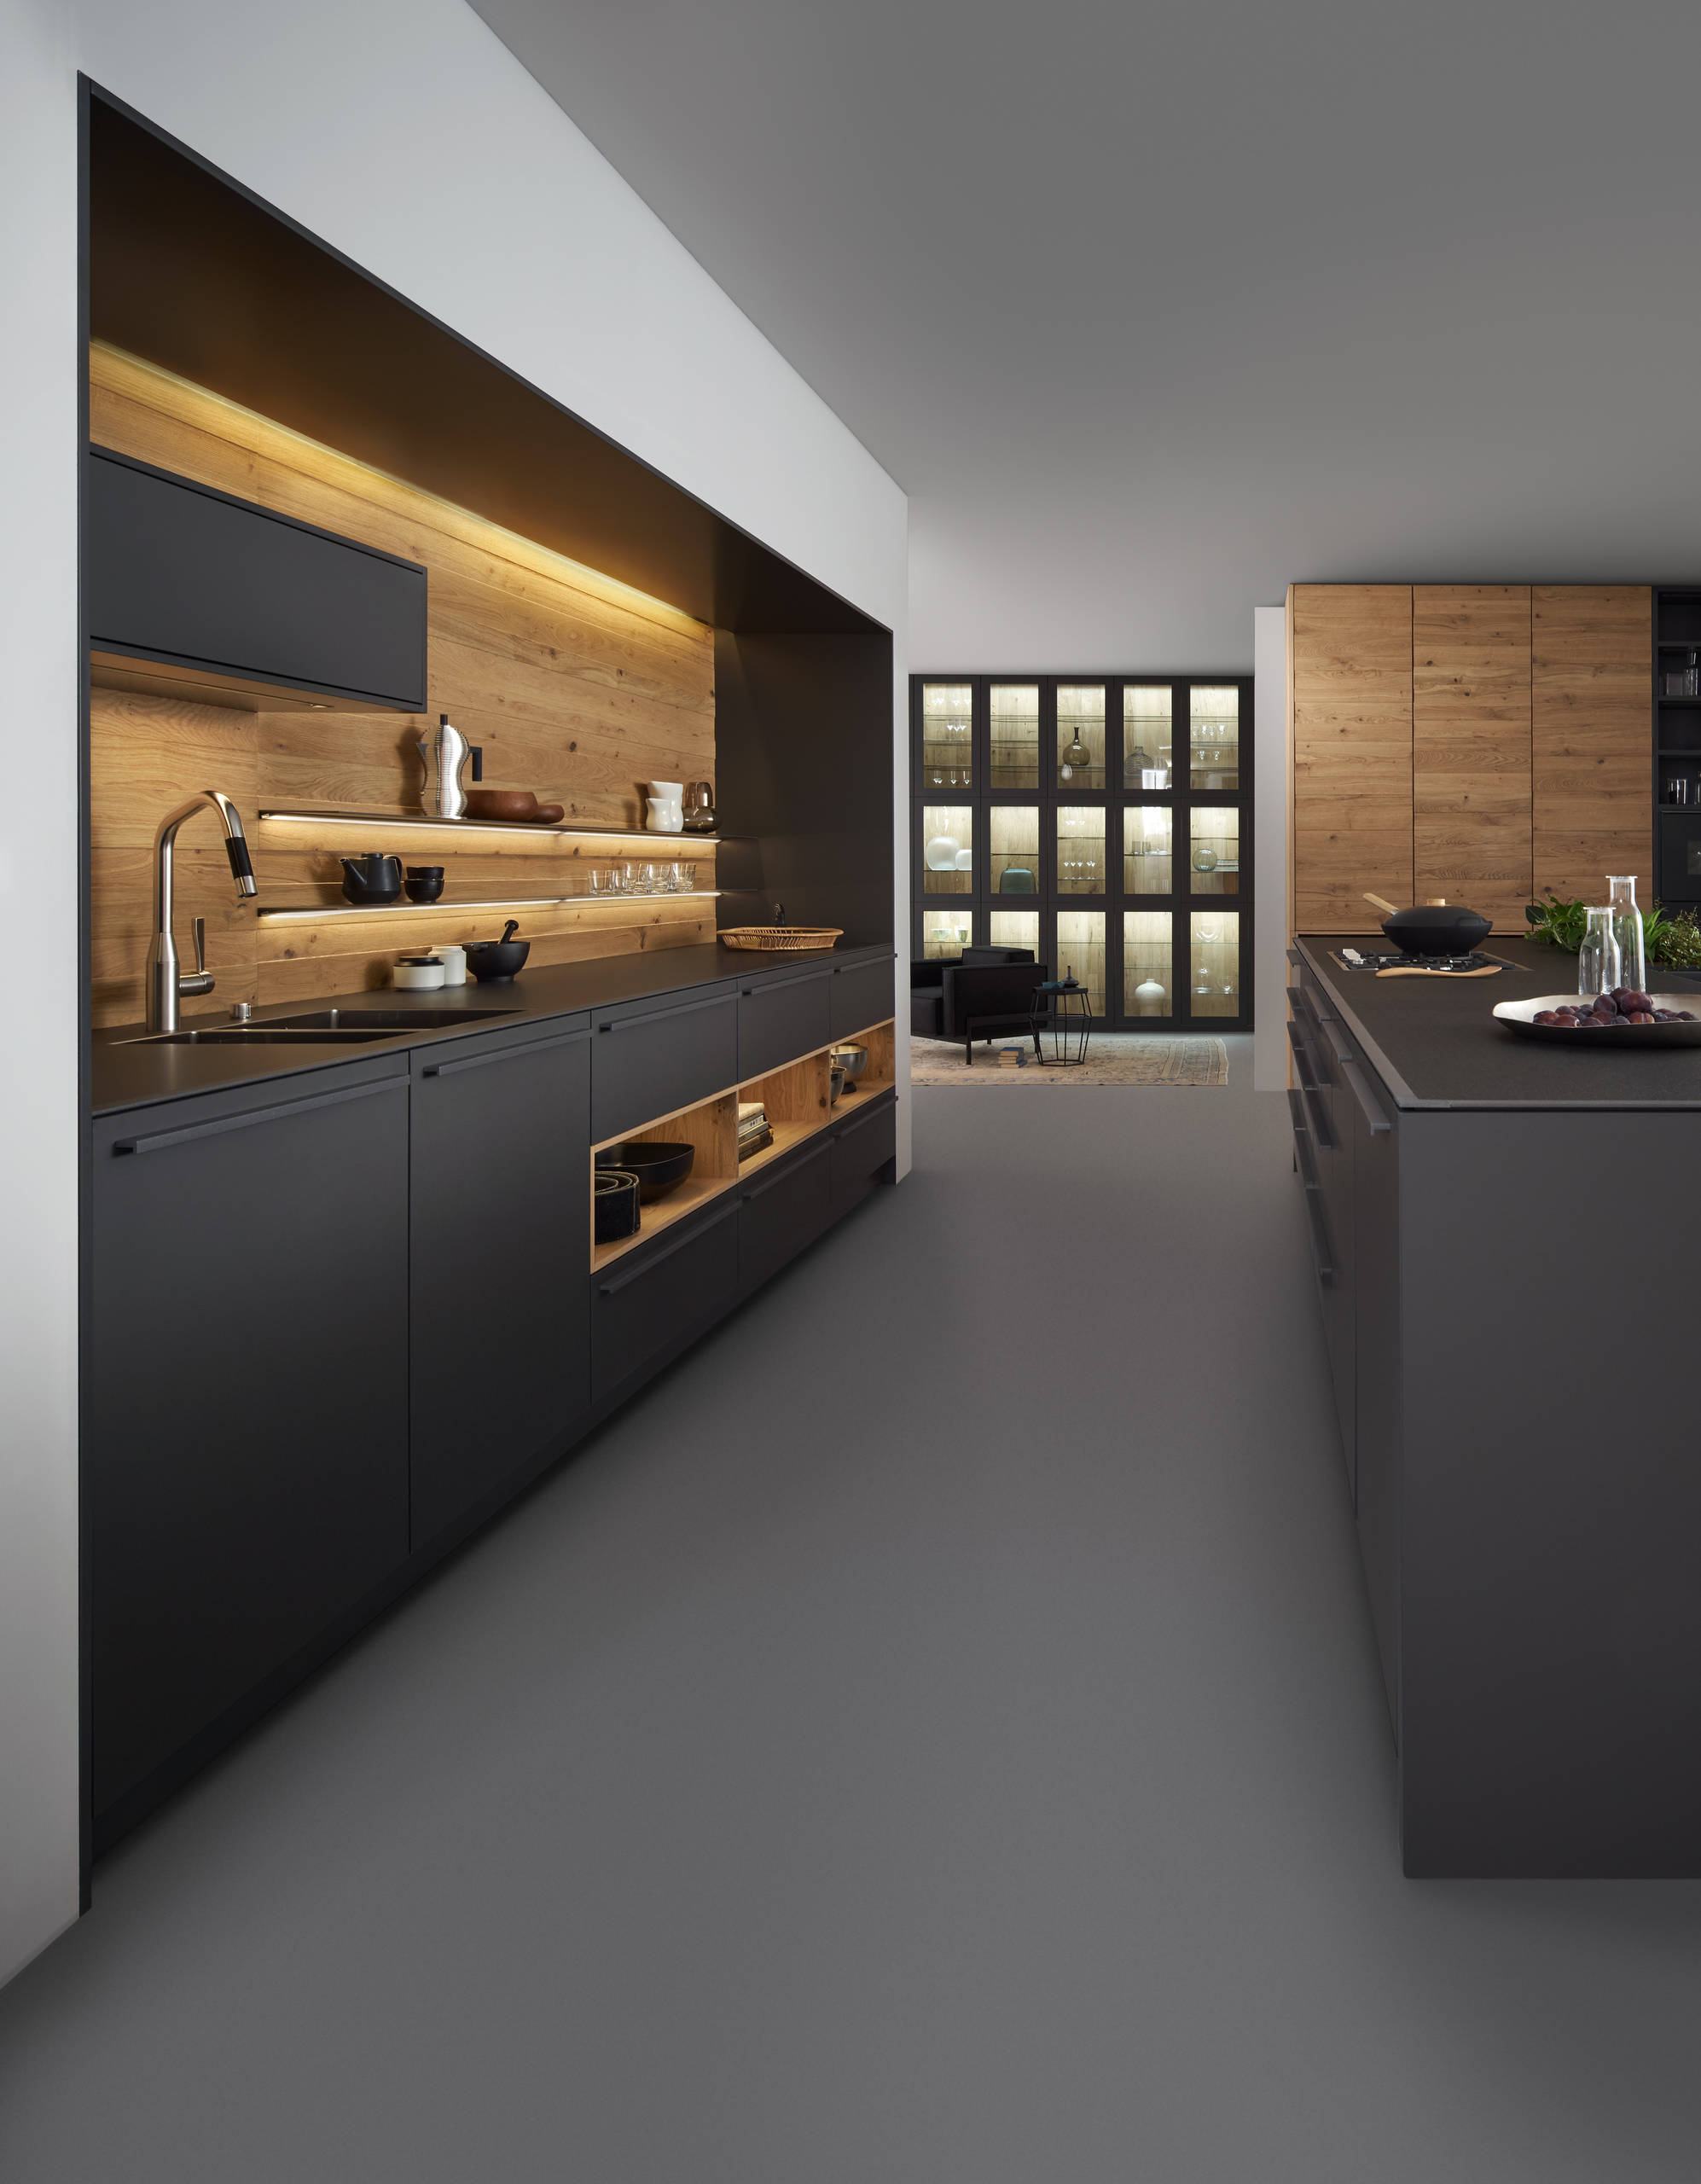 999 Beautiful Modern Kitchen Pictures Ideas October 2020 Houzz,Who Is Barefoot Contessa Husband